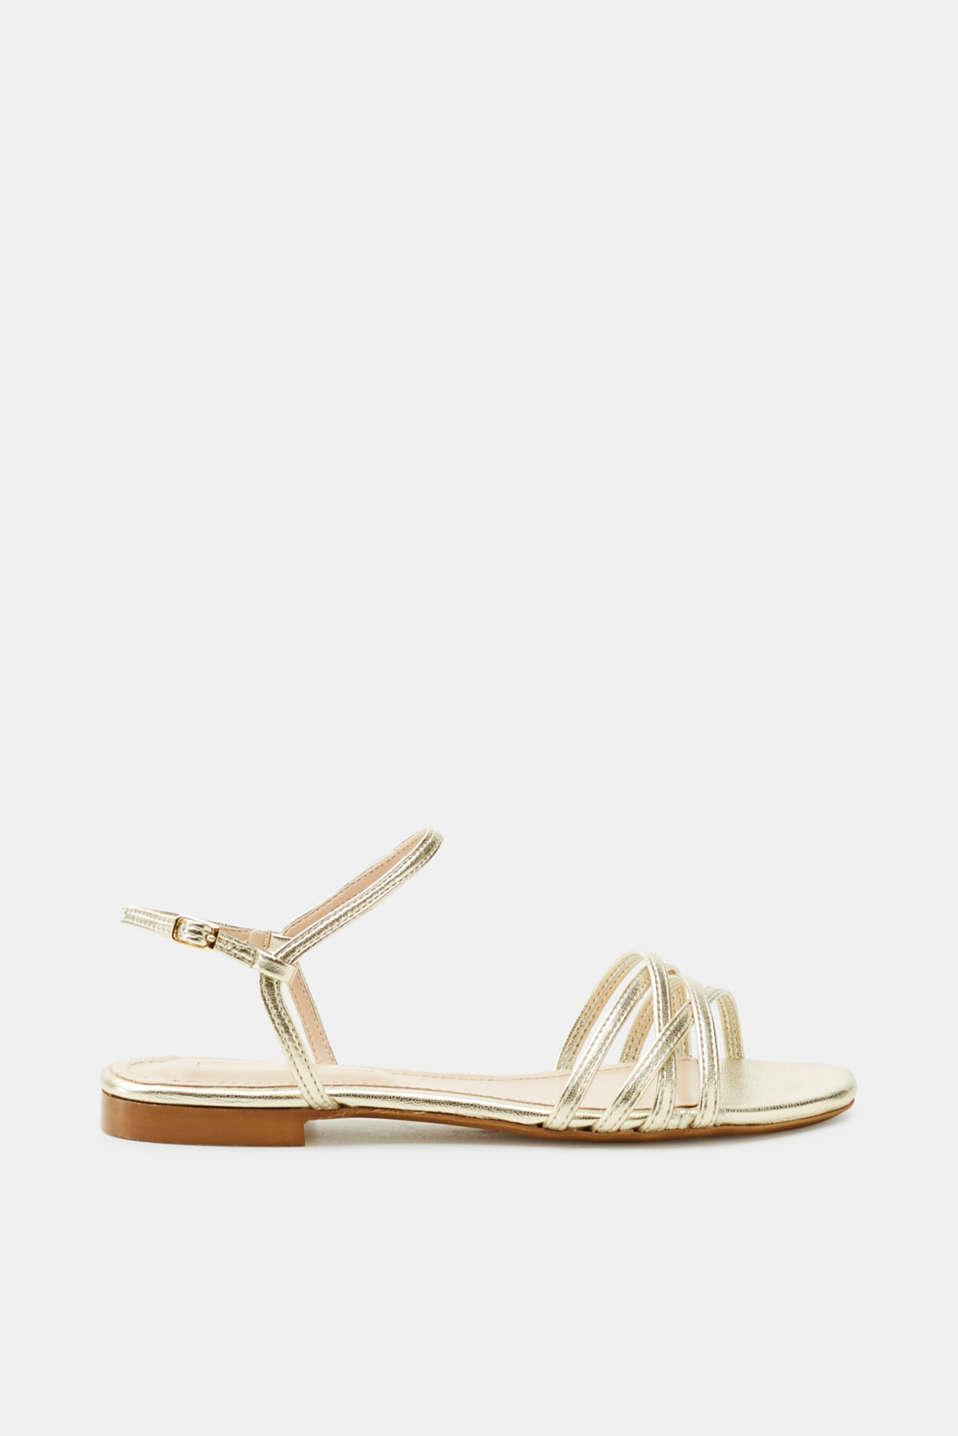 Esprit - Flat sandals in a metallic look